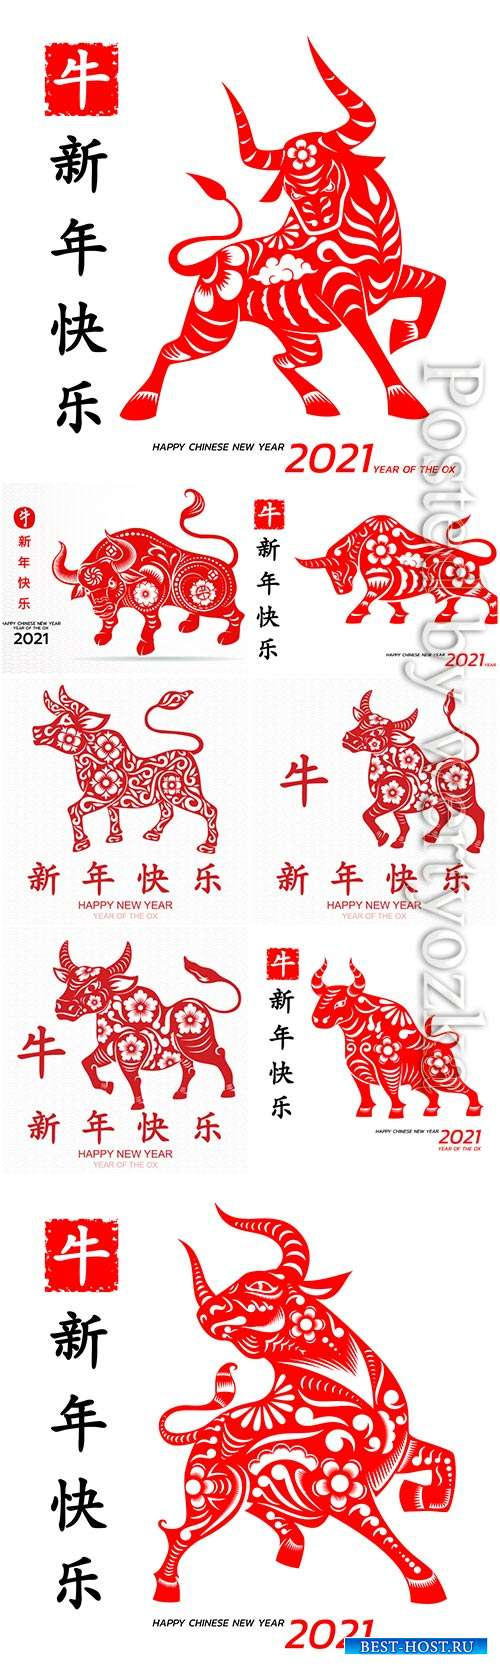 Happy chinese new year vector background 2021